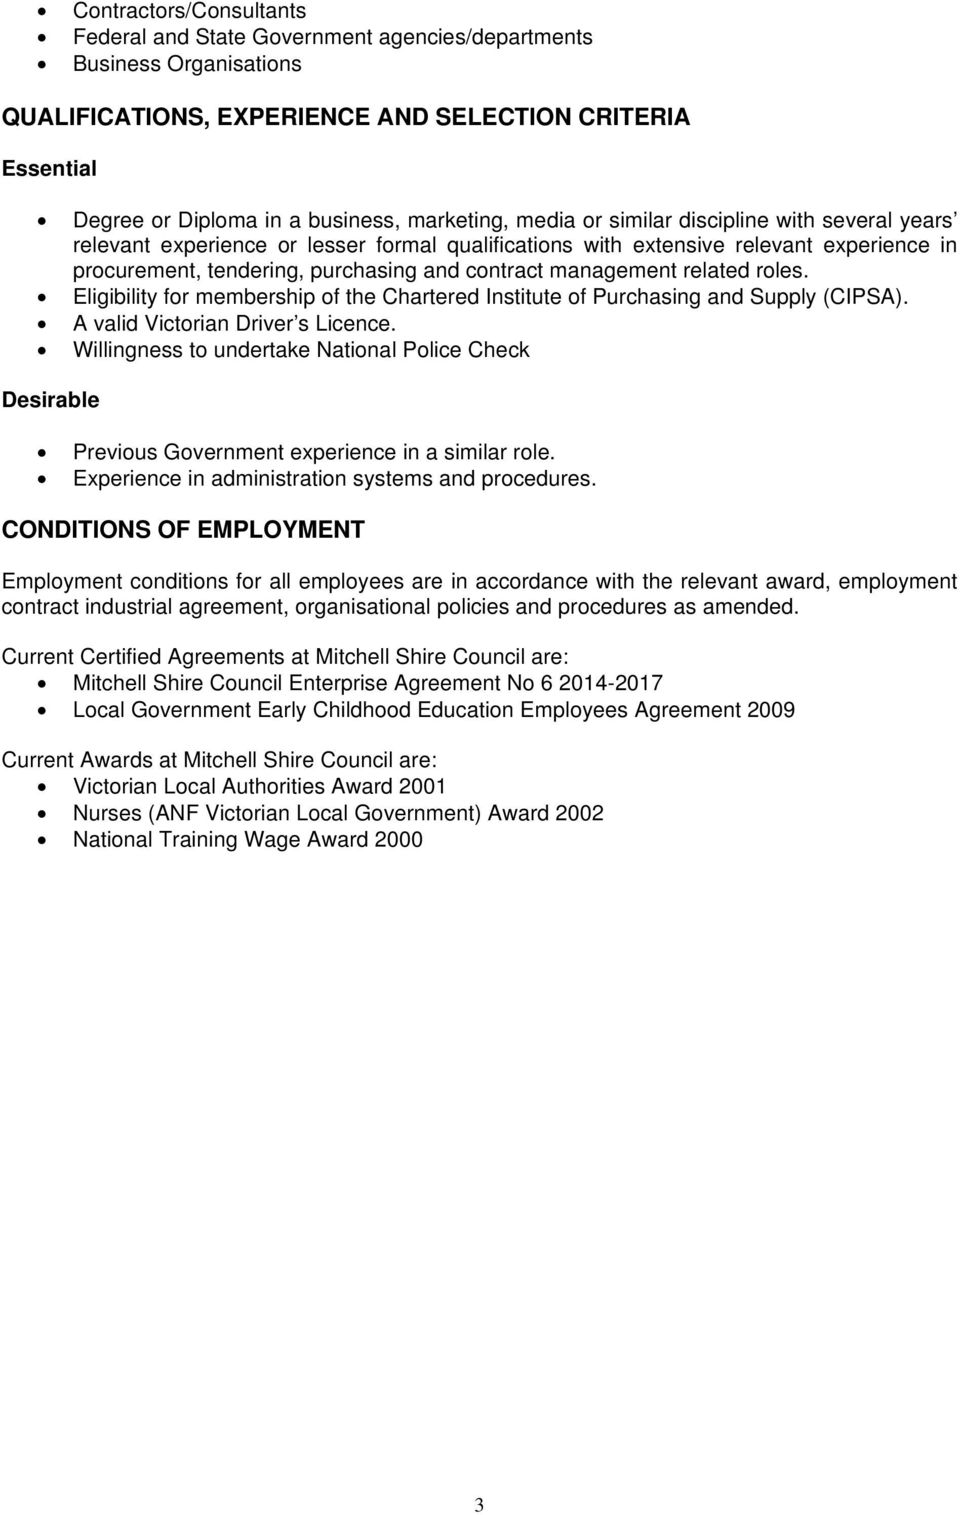 management related roles. Eligibility for membership of the Chartered Institute of Purchasing and Supply (CIPSA). A valid Victorian Driver s Licence.